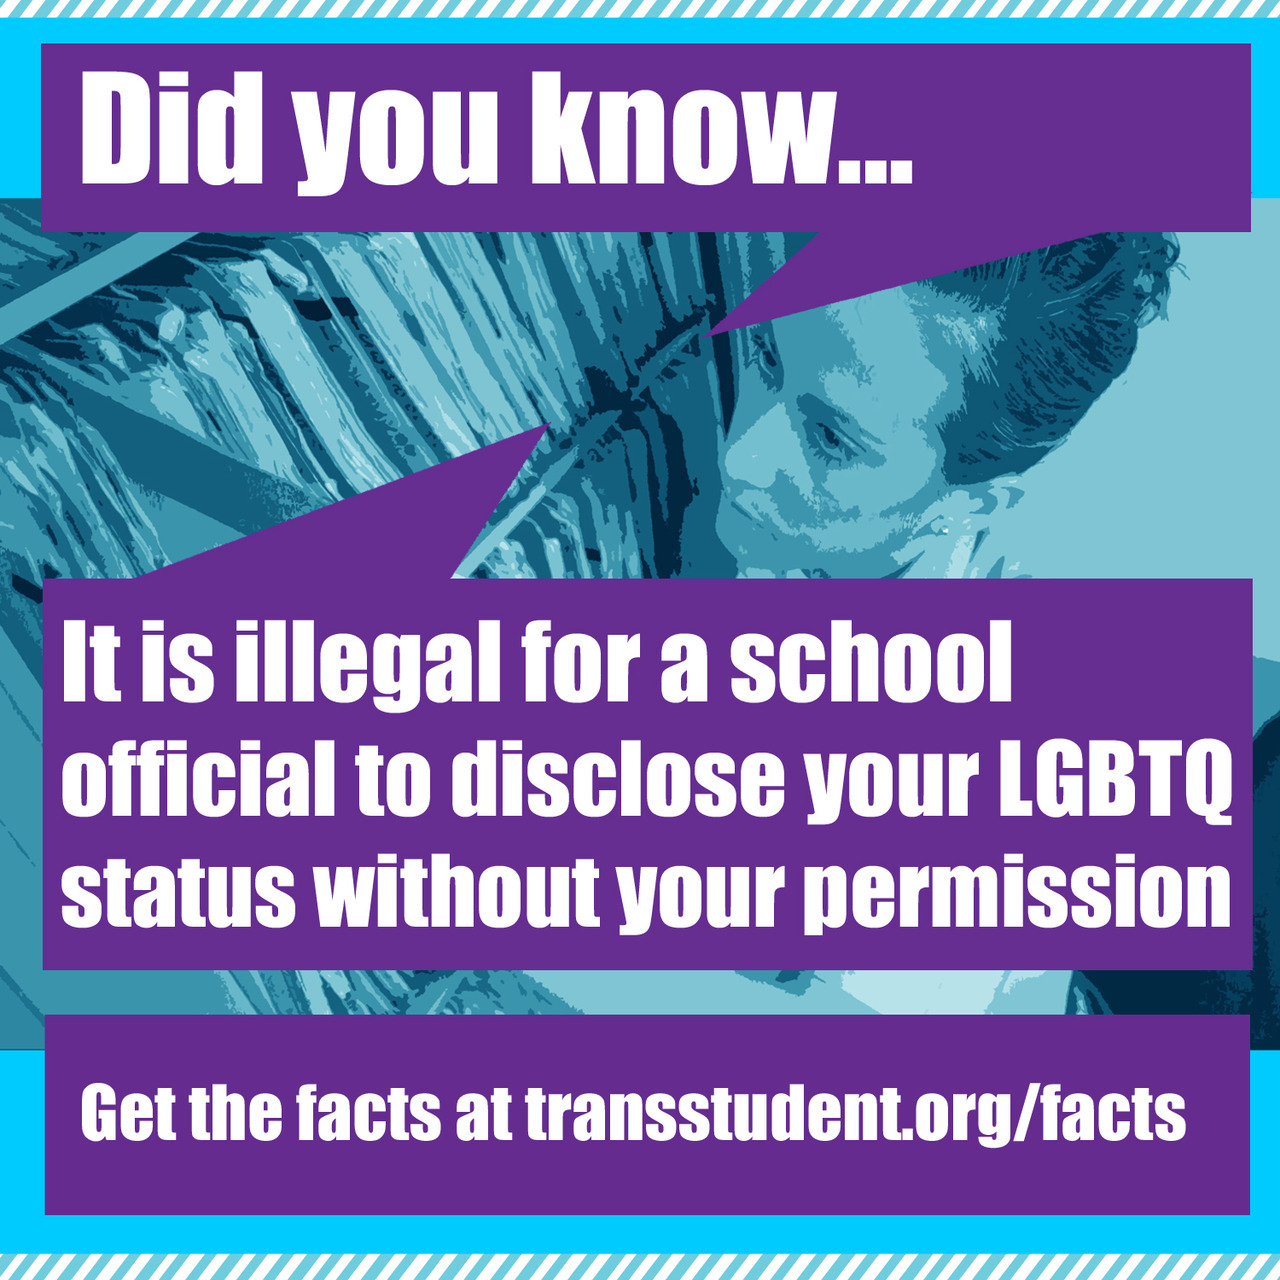 Want to know more about your legal rights as an LGBTQ student? Click here for an awesome article by the Southern Poverty Law Center! To repost on Facebook, click here! To retweet, click here!